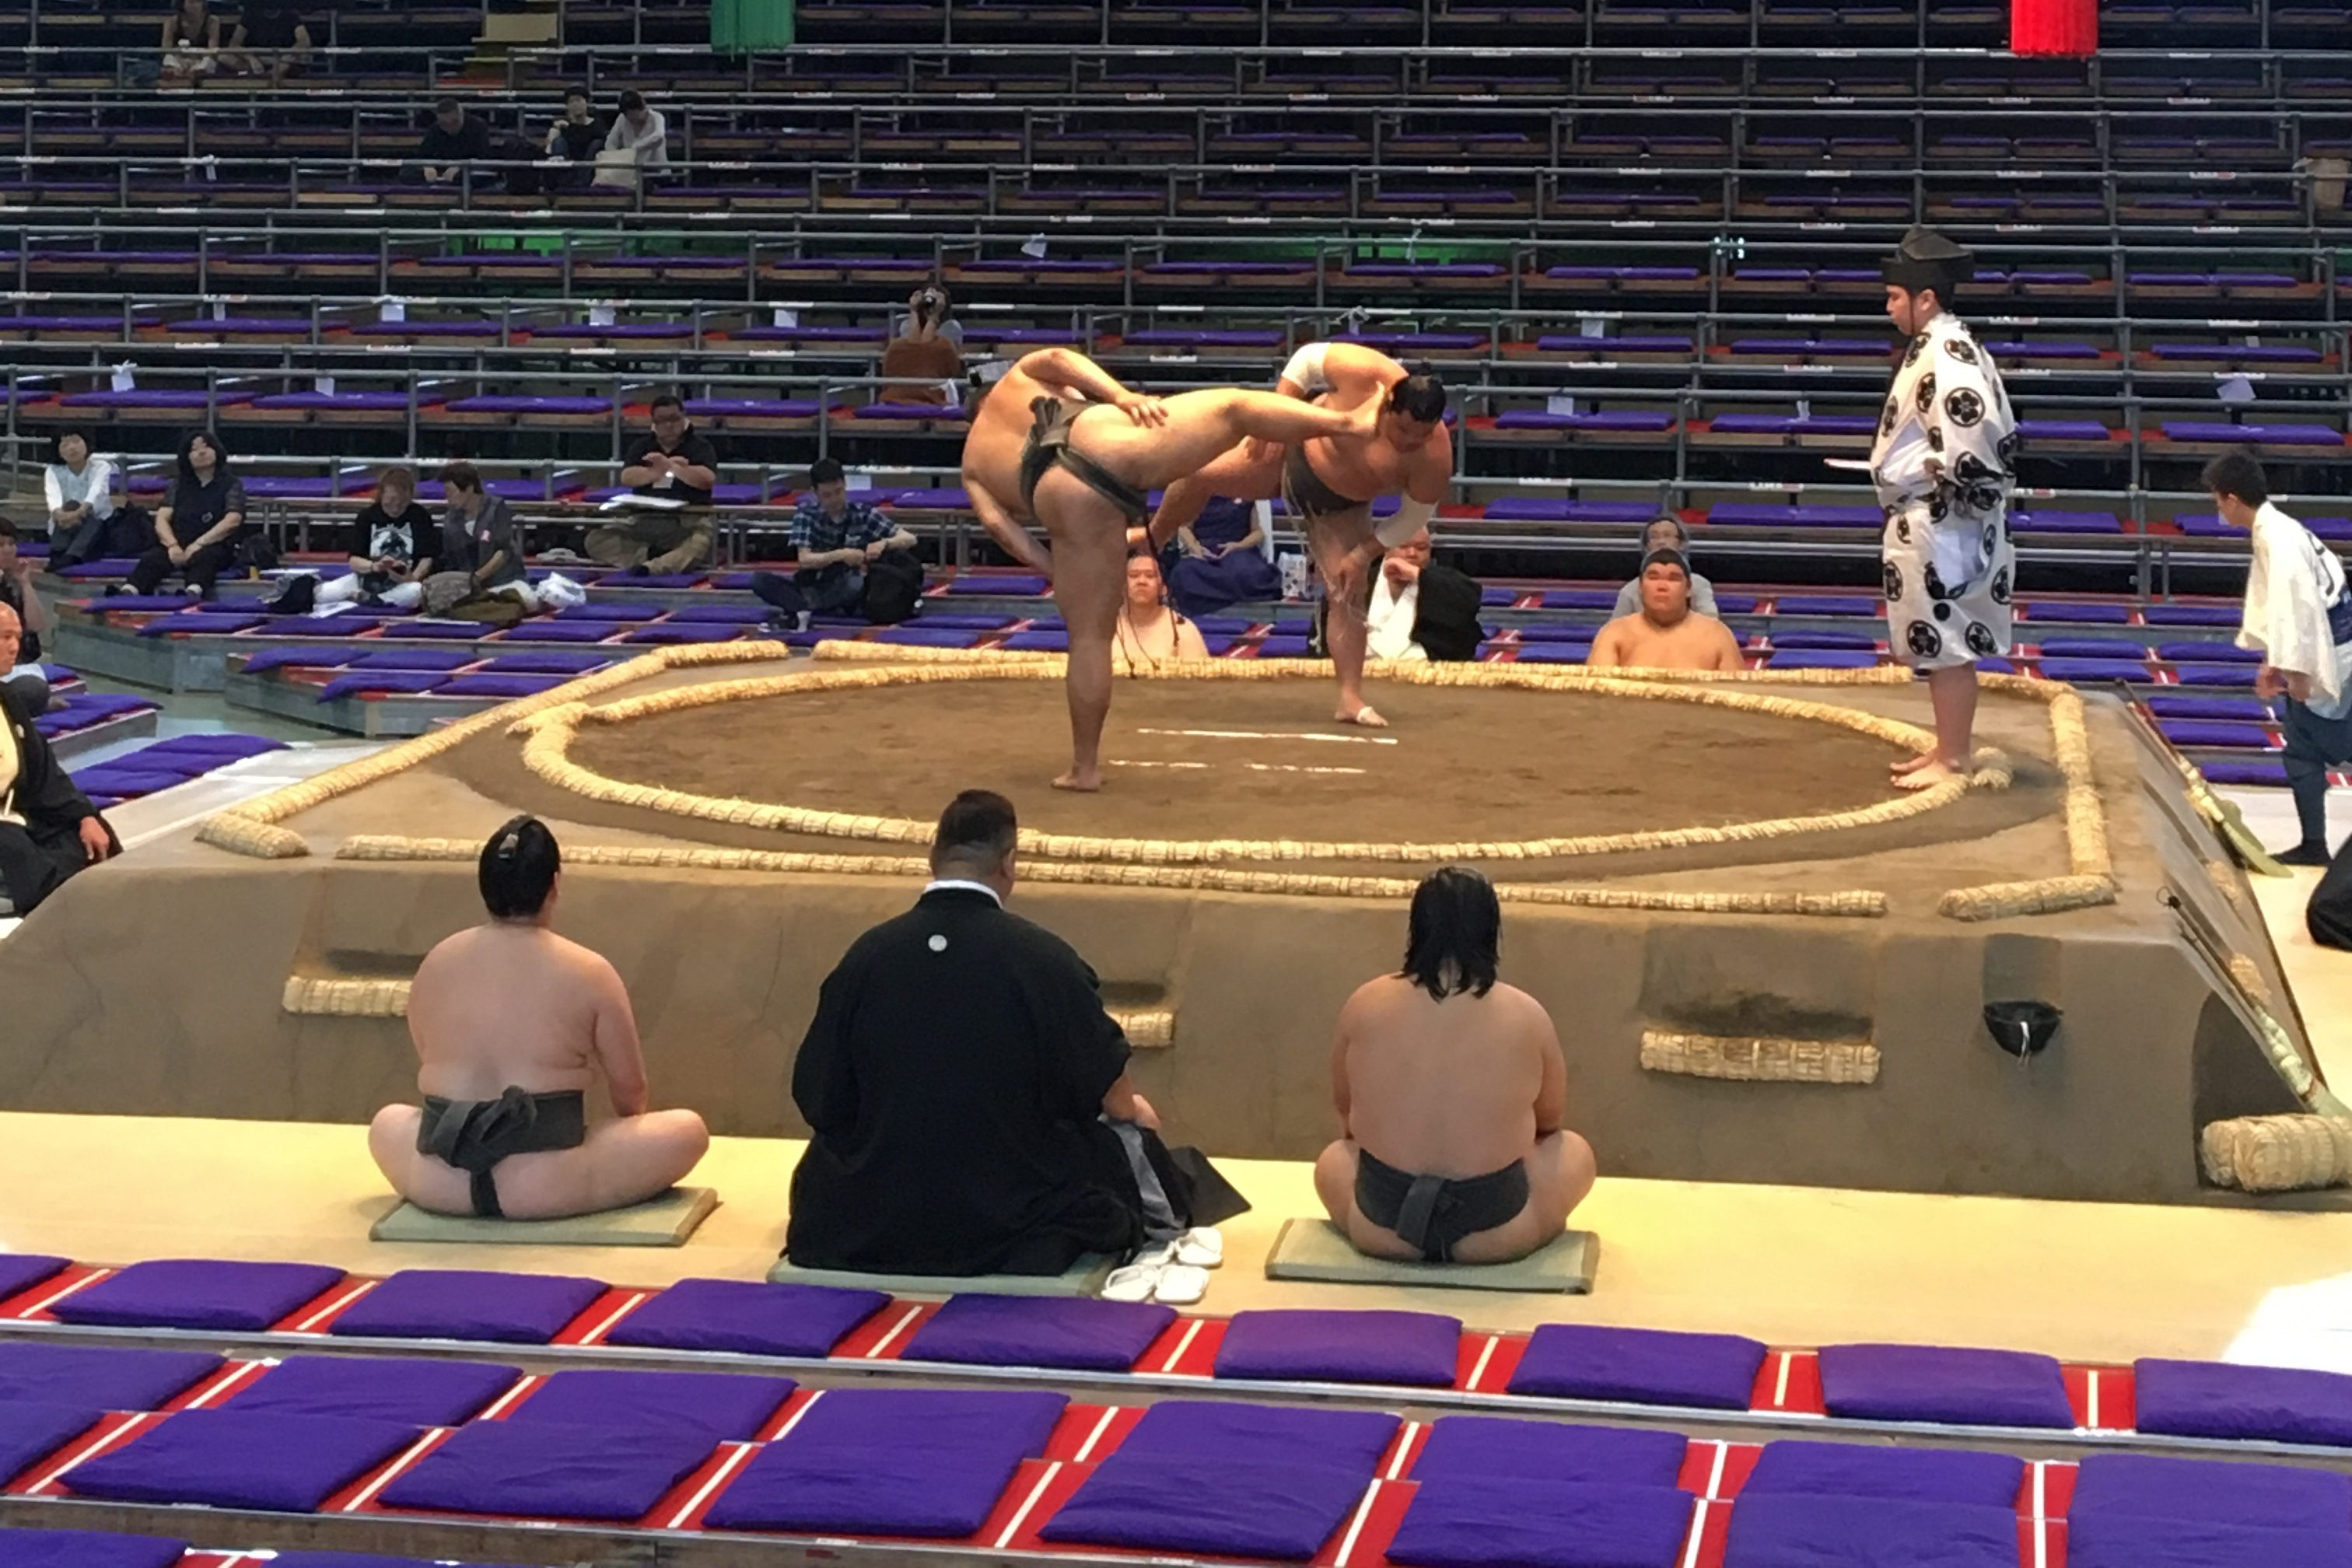 Nagoya grand sumo tournament: My experience and tips for you